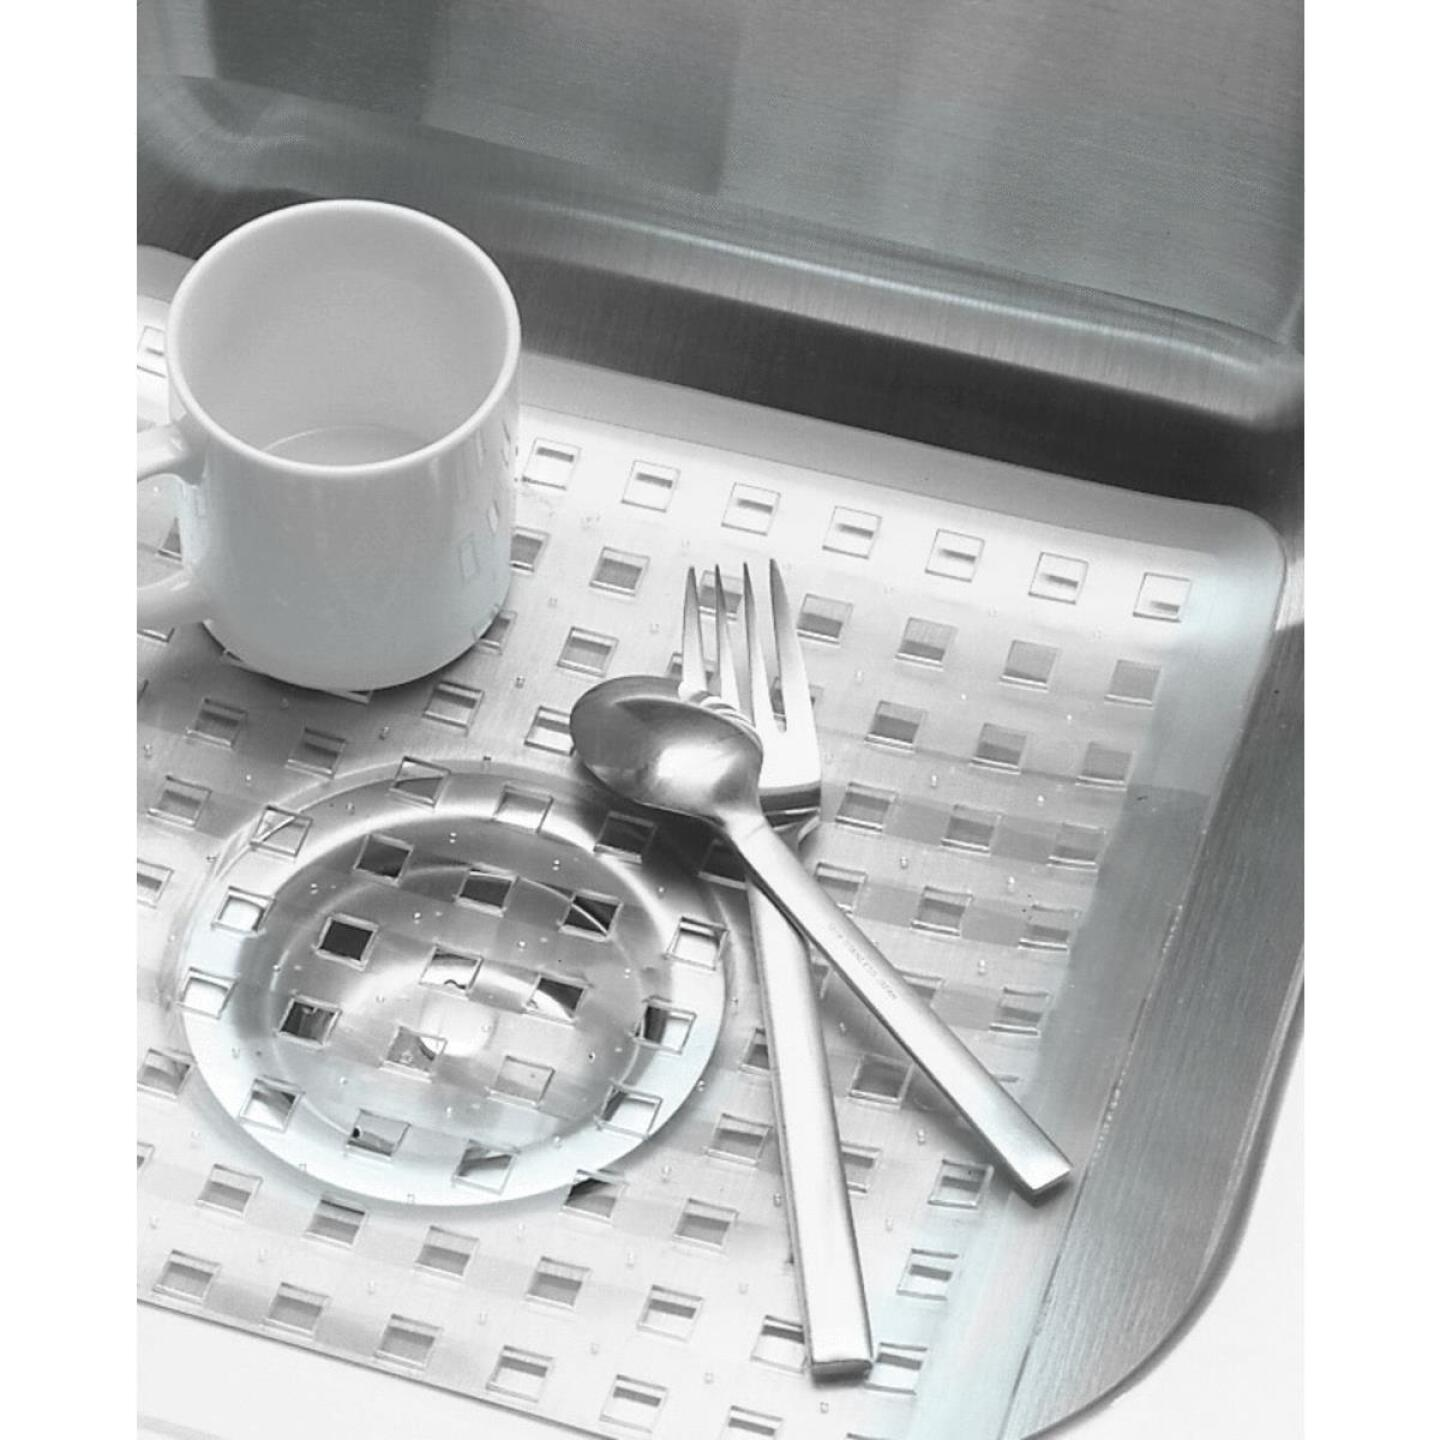 InterDesign Sinkworks 12.5 In. x 16 In. Euro Sink Mat Image 3